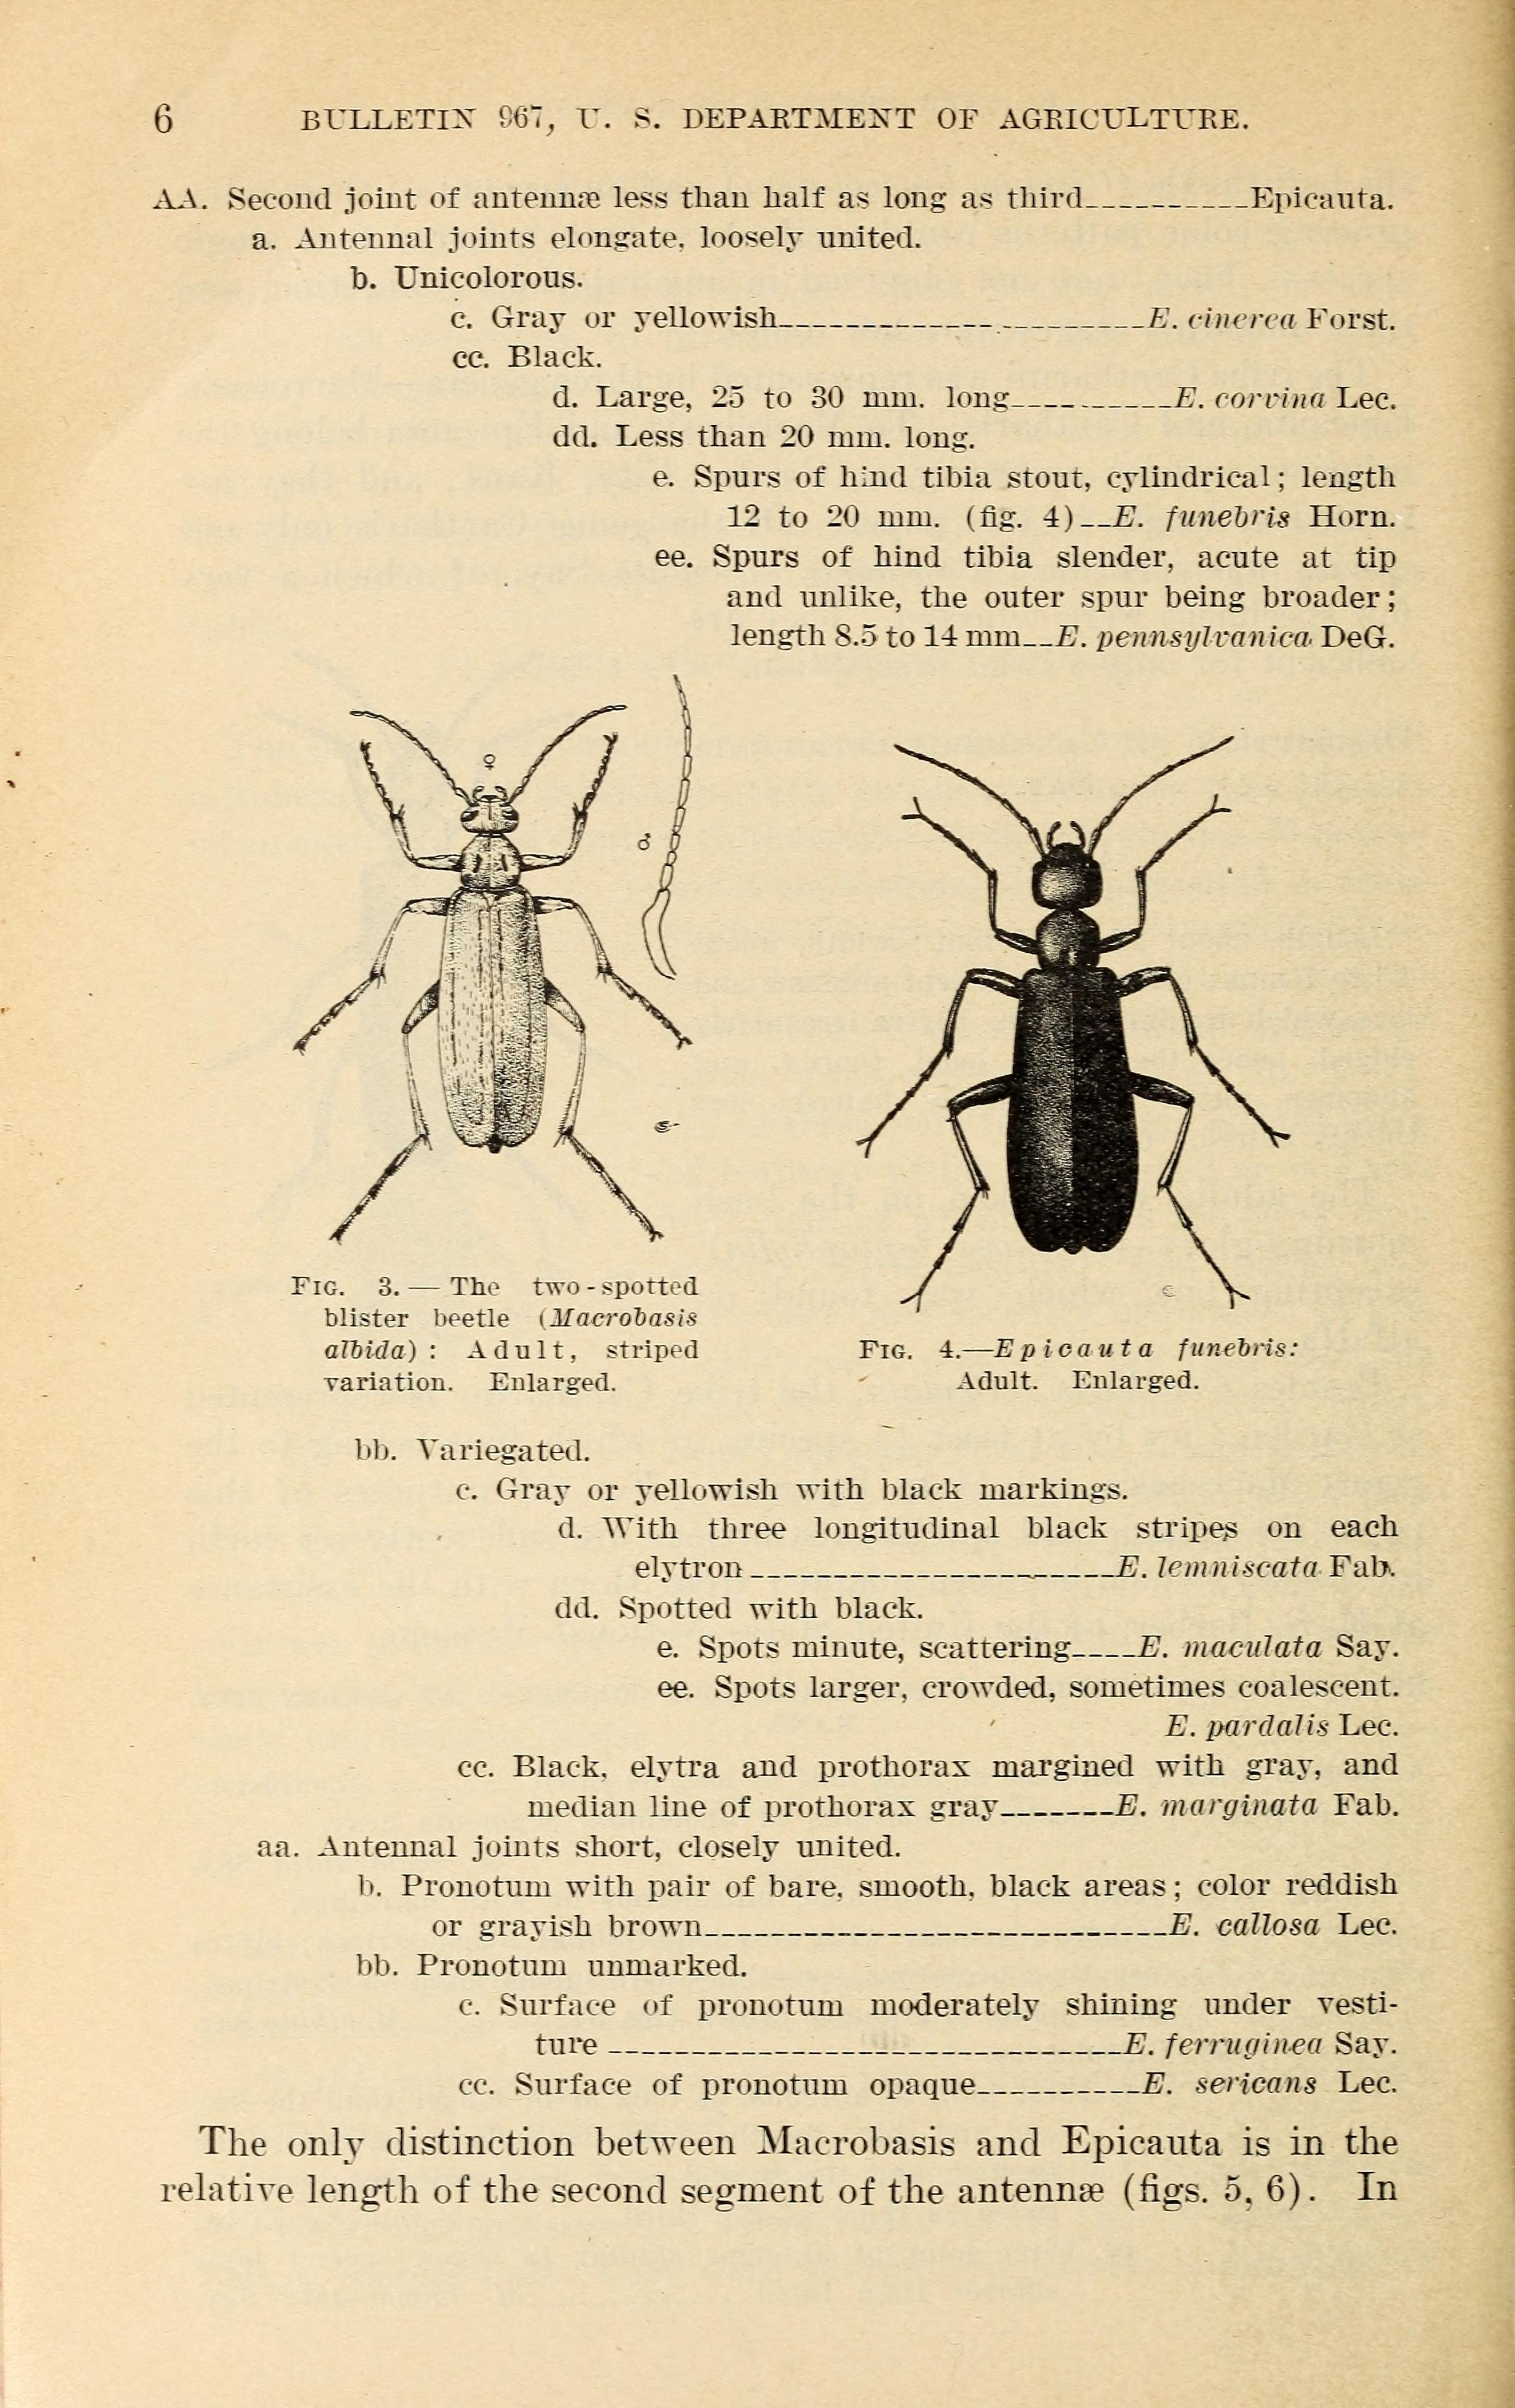 File:Results of work on blister beetles in Kansas (Page 6